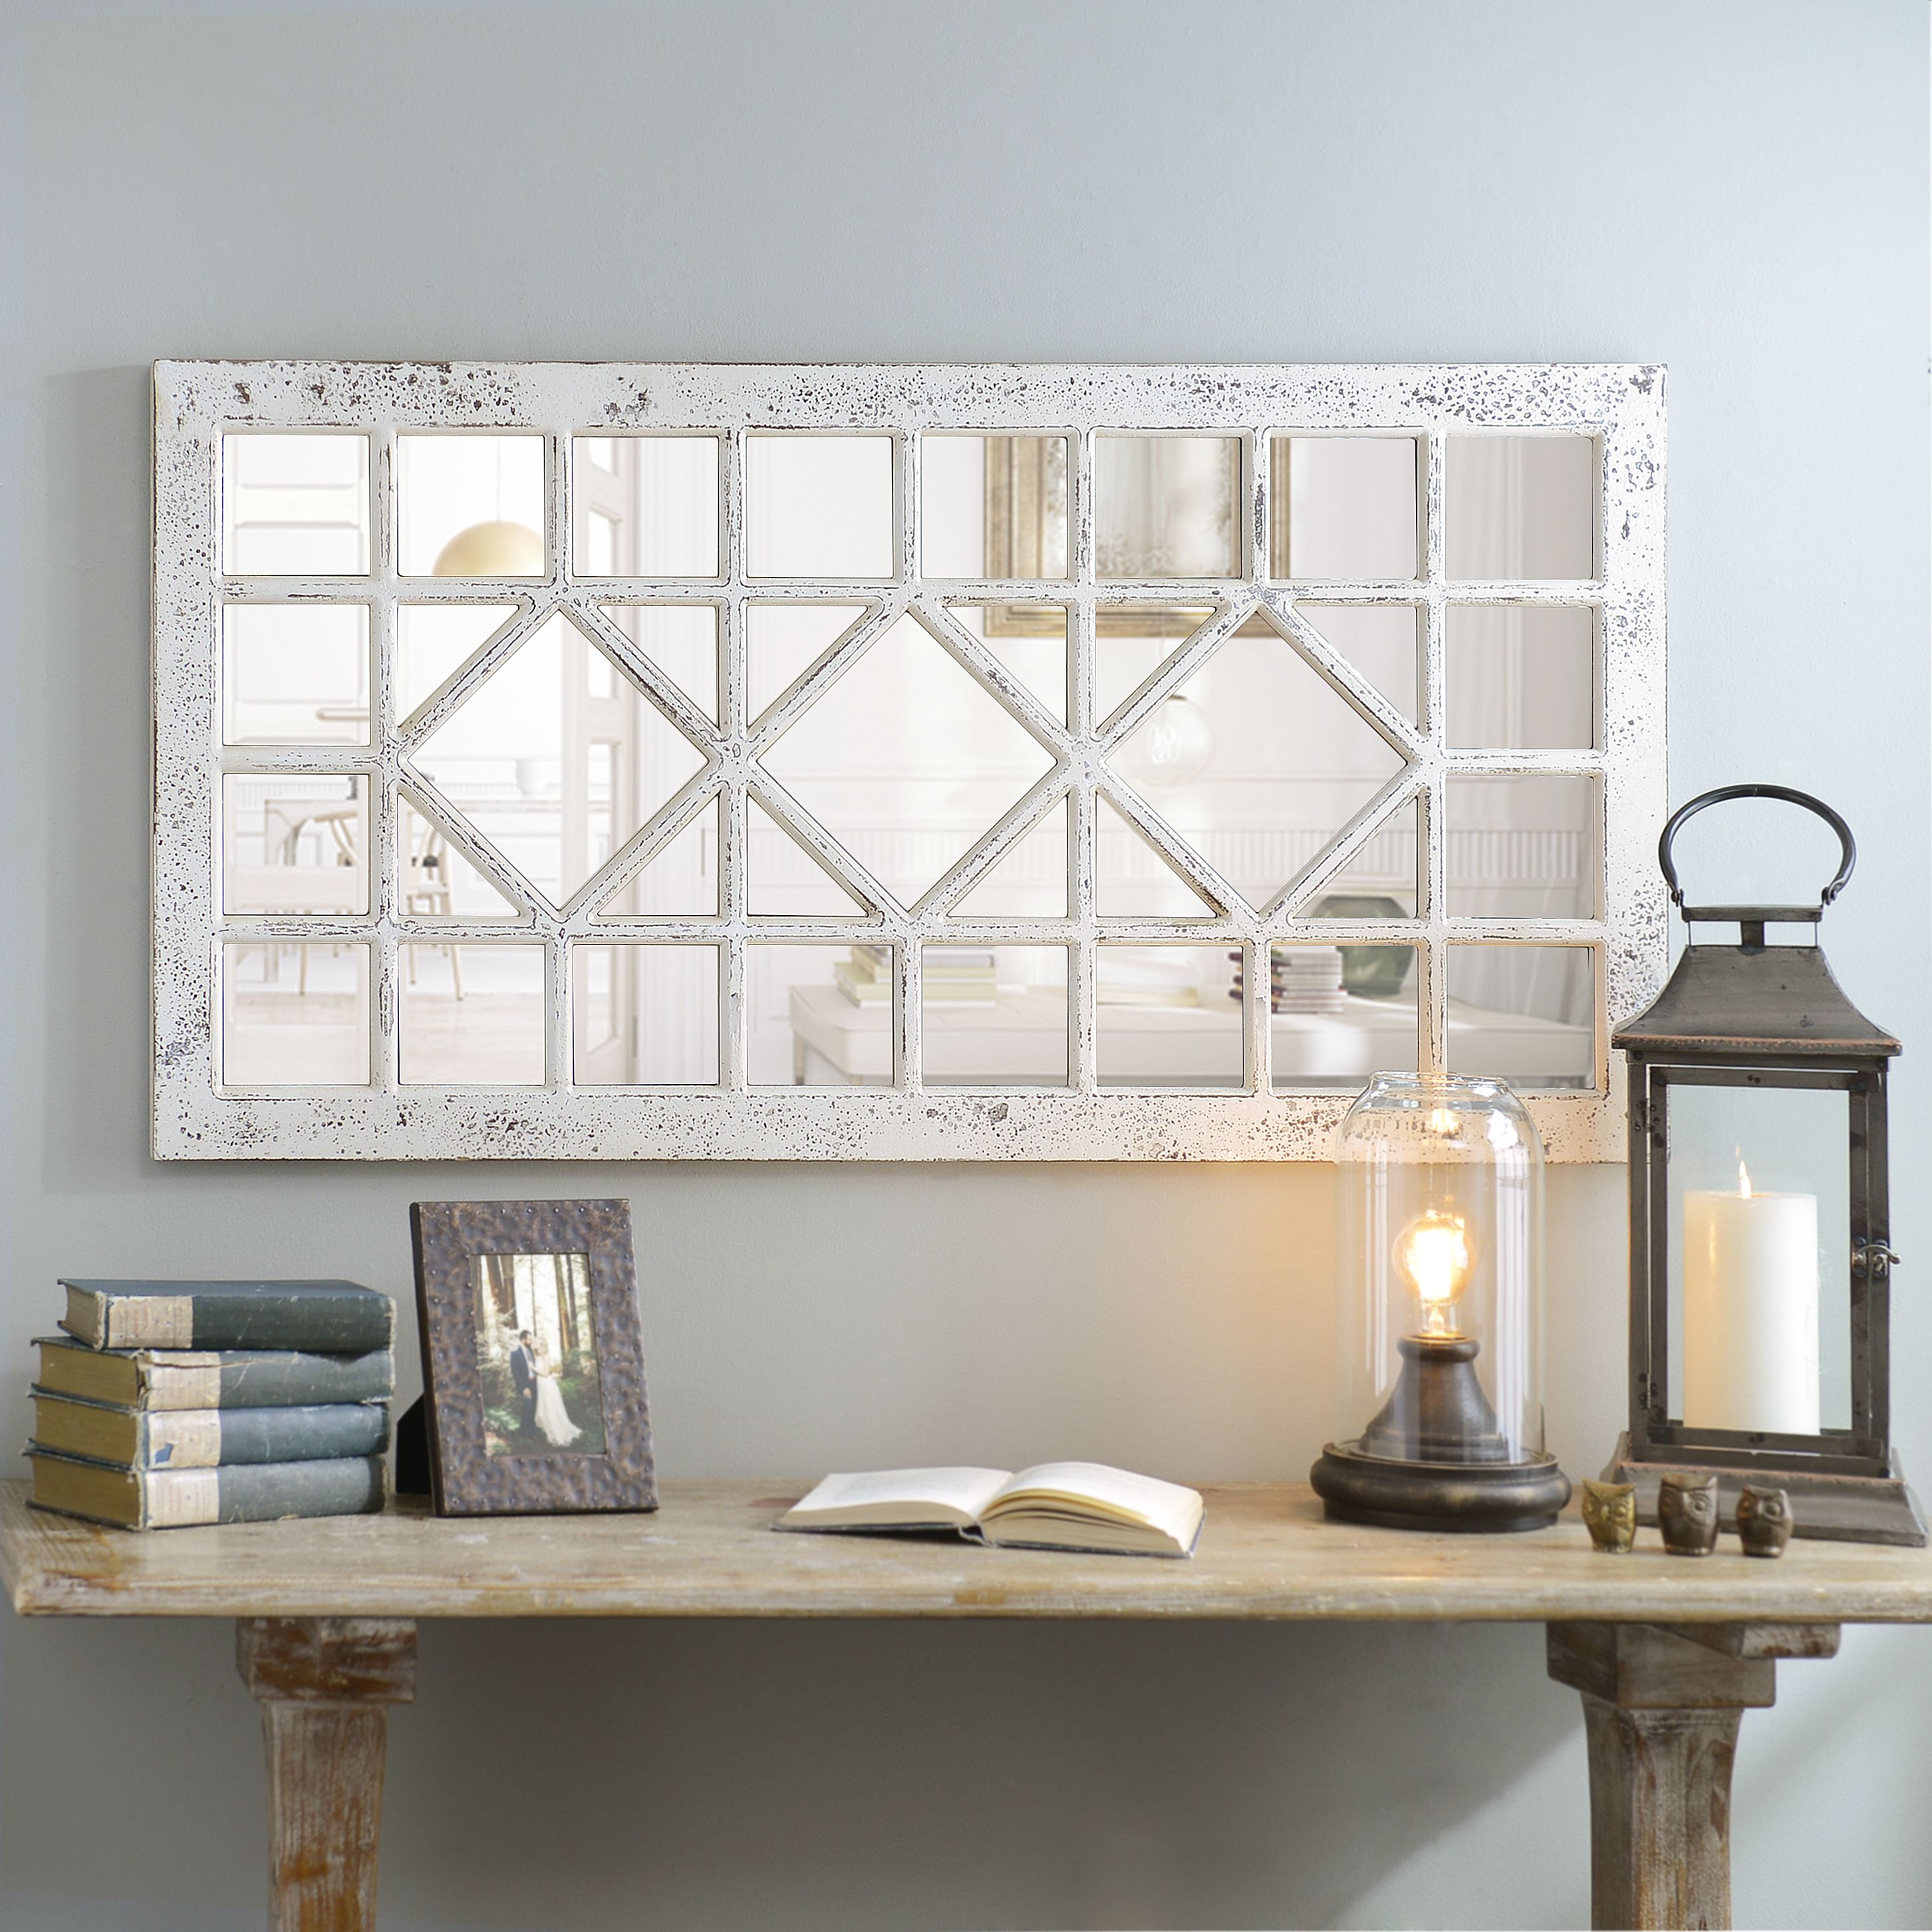 Product Details Distressed Cream Marquis Pane Mirror | Home In Polito Cottage/country Wall Mirrors (Image 15 of 20)